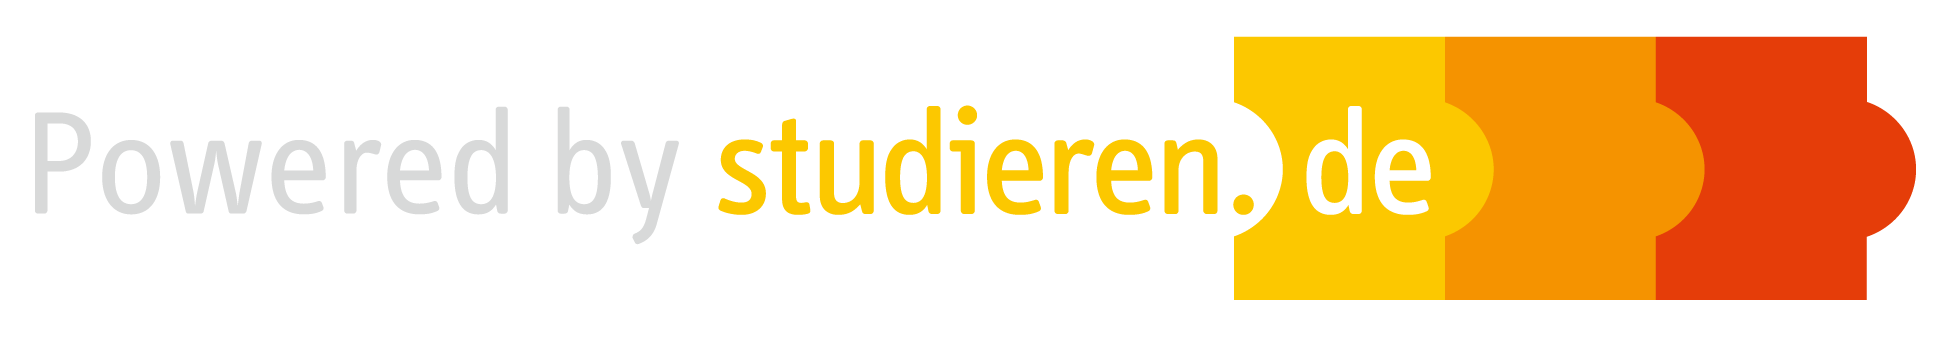 logo: powered by studieren.de